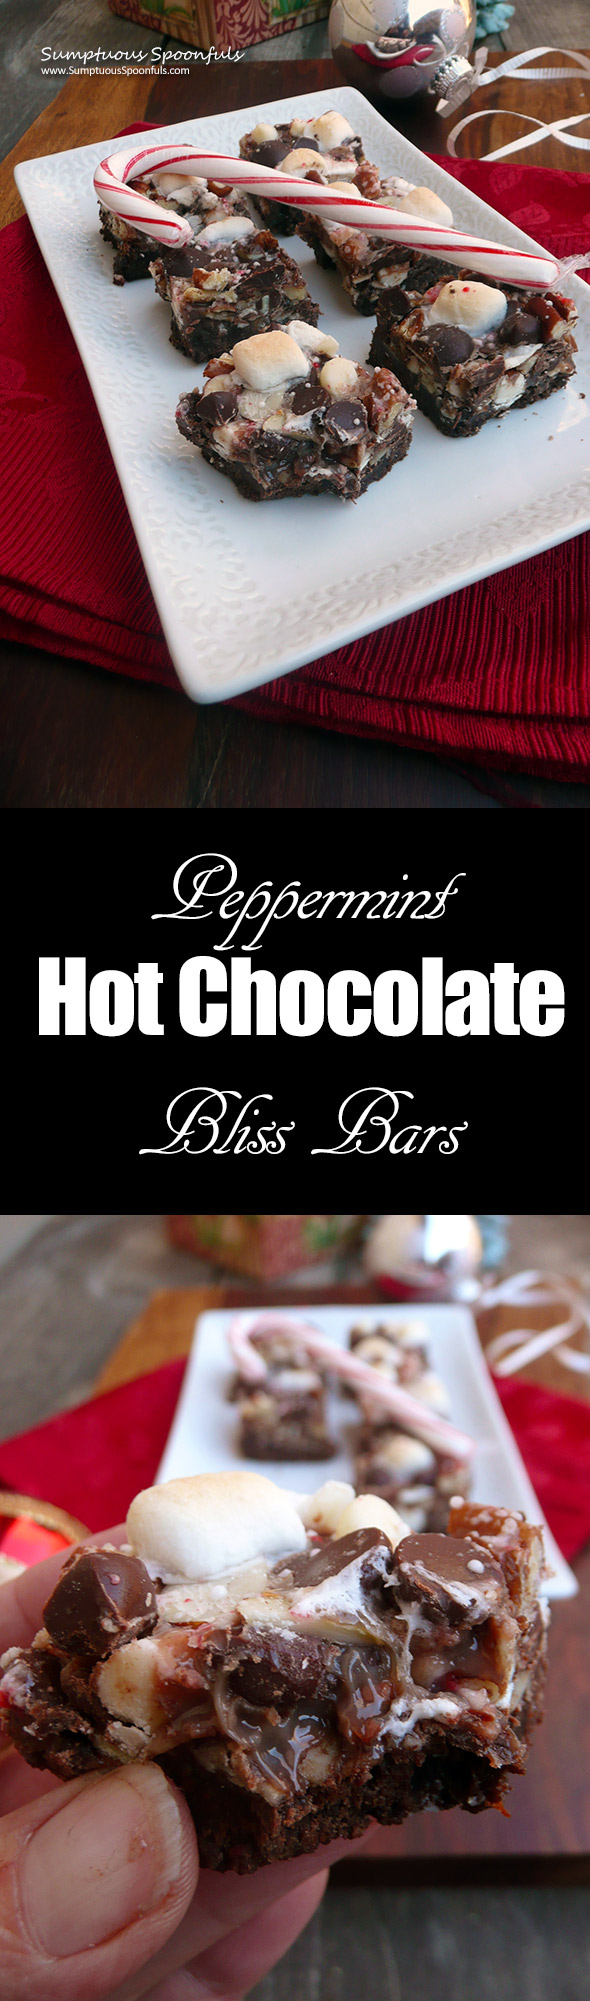 Peppermint Hot Chocolate Bliss Bars ~ Sumptuous Spoonfuls #gooey #chocolate #mint #bars